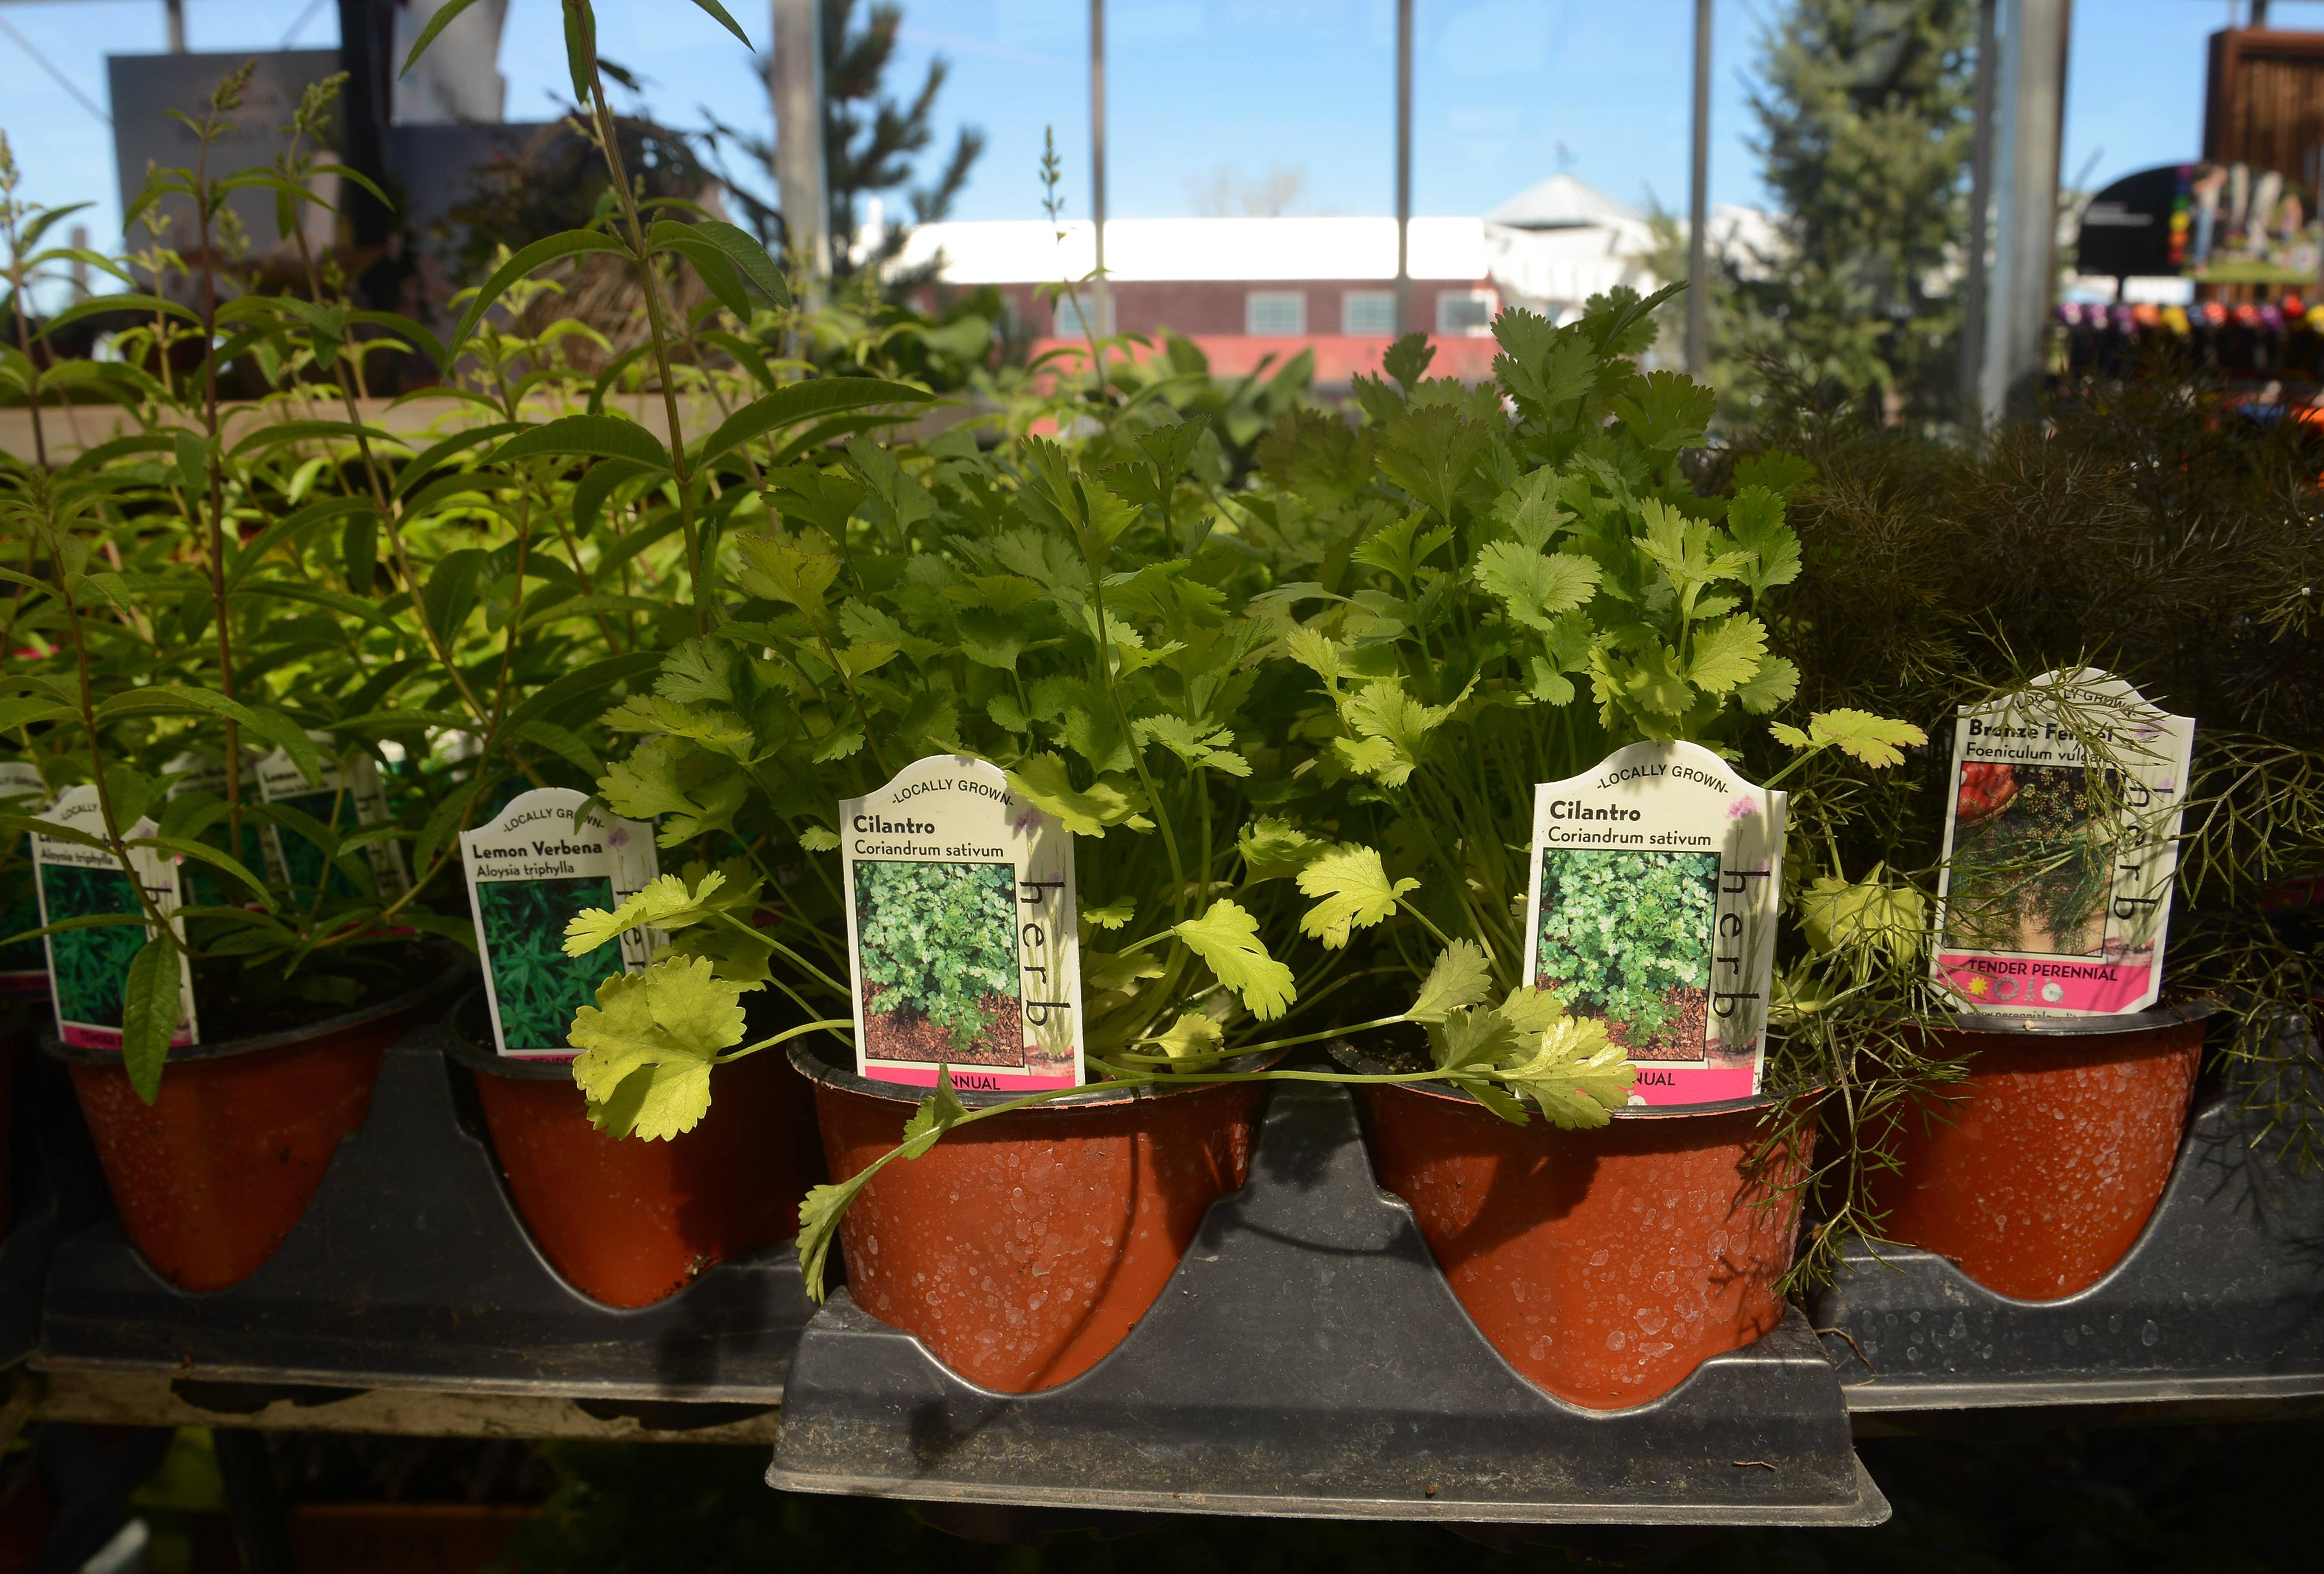 Herbs, including from left lemon verbana, cilantro and fennel found at Lurvey's Garden Center in Des Plaines, can be easy to grow and liven up your cooking.